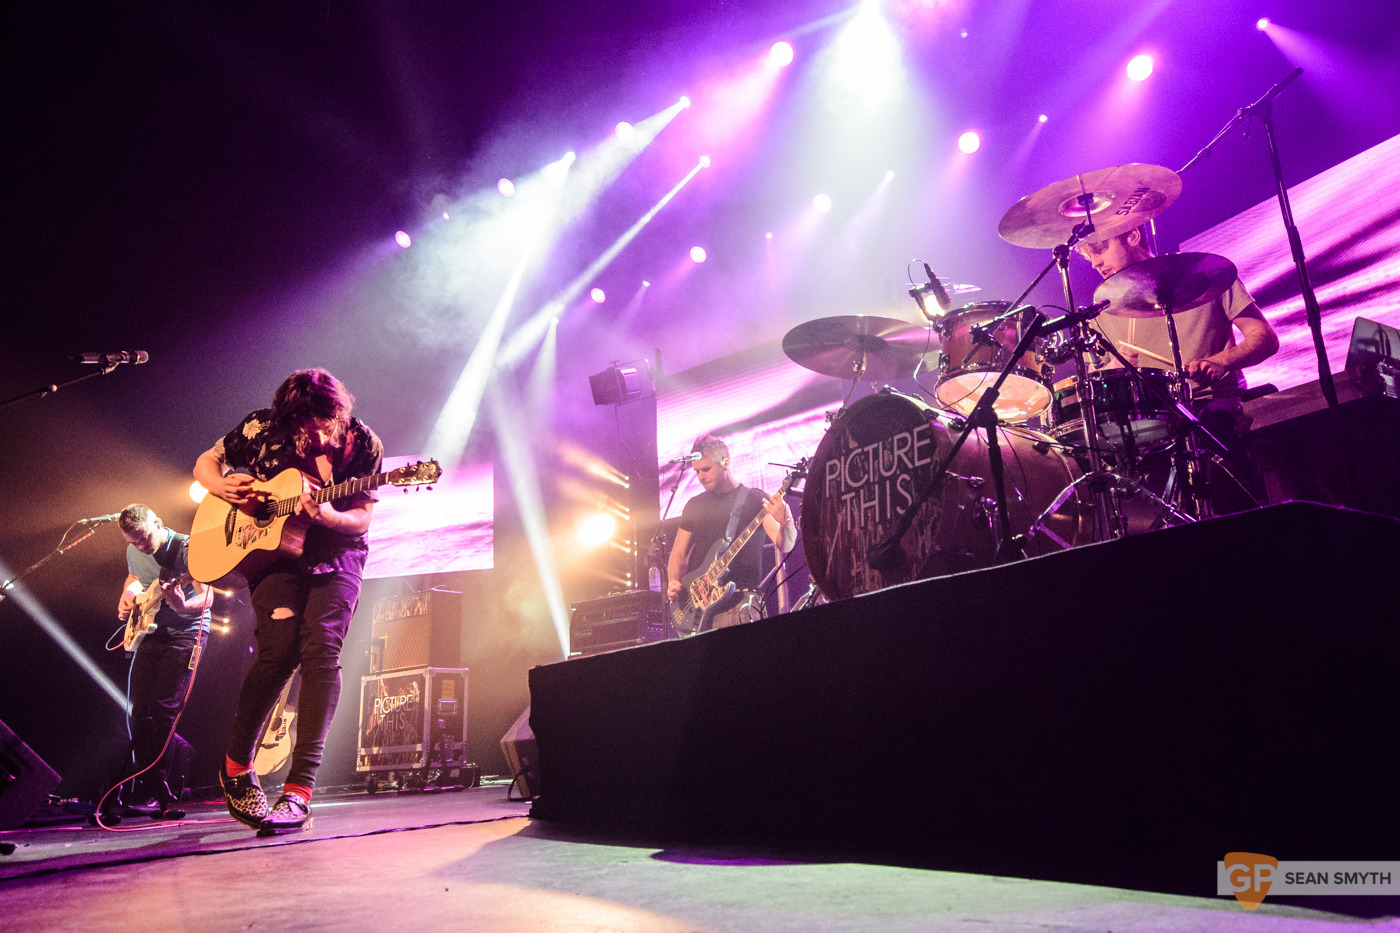 picture-this-at-the-olympia-theatre-by-sean-smyth-2-11-16-13-of-20